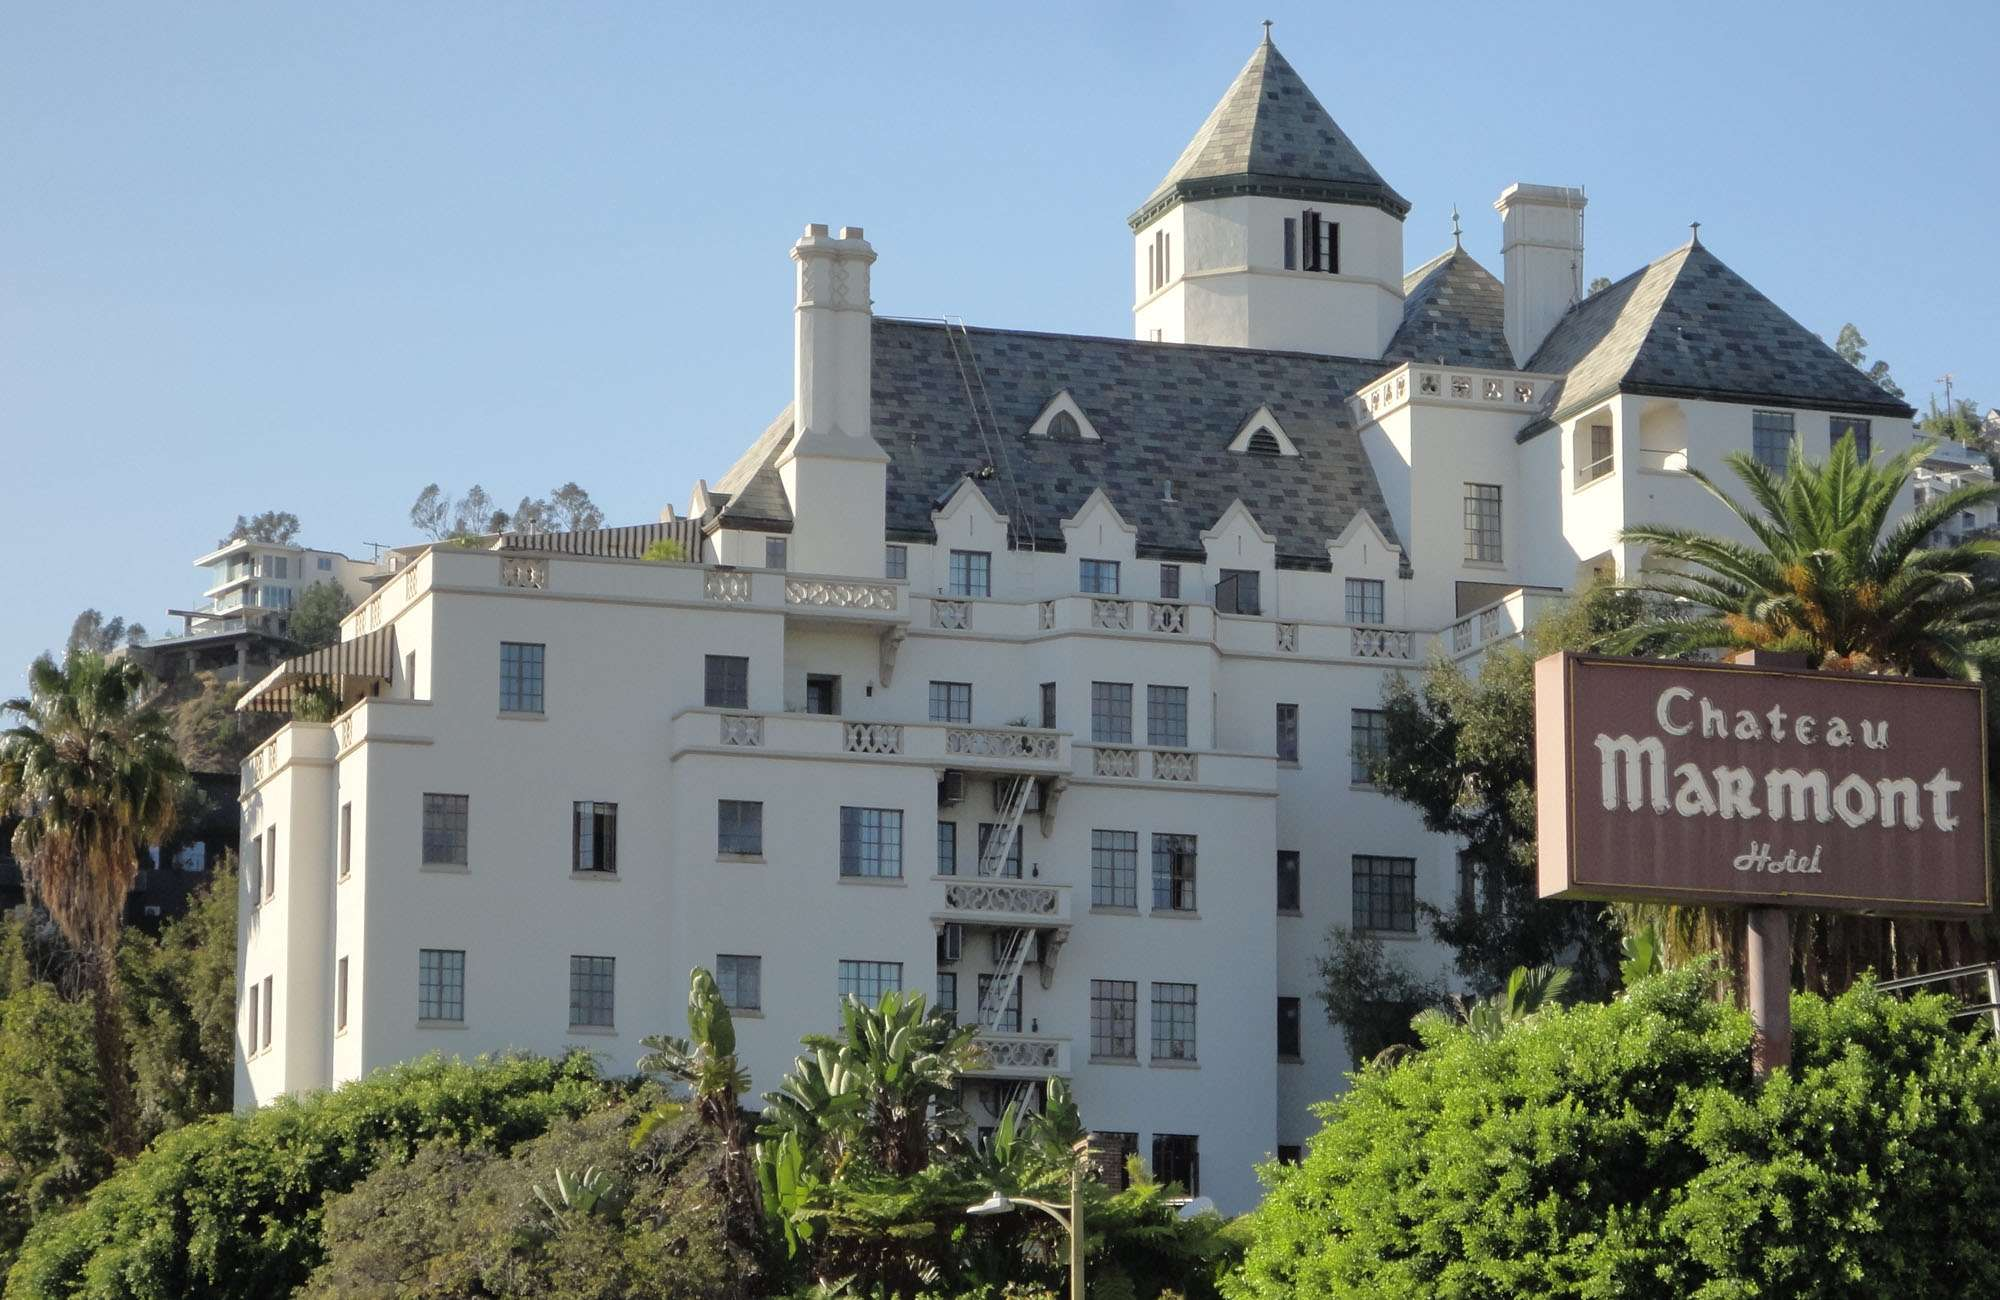 Chateau Marmont in Hollywood, California